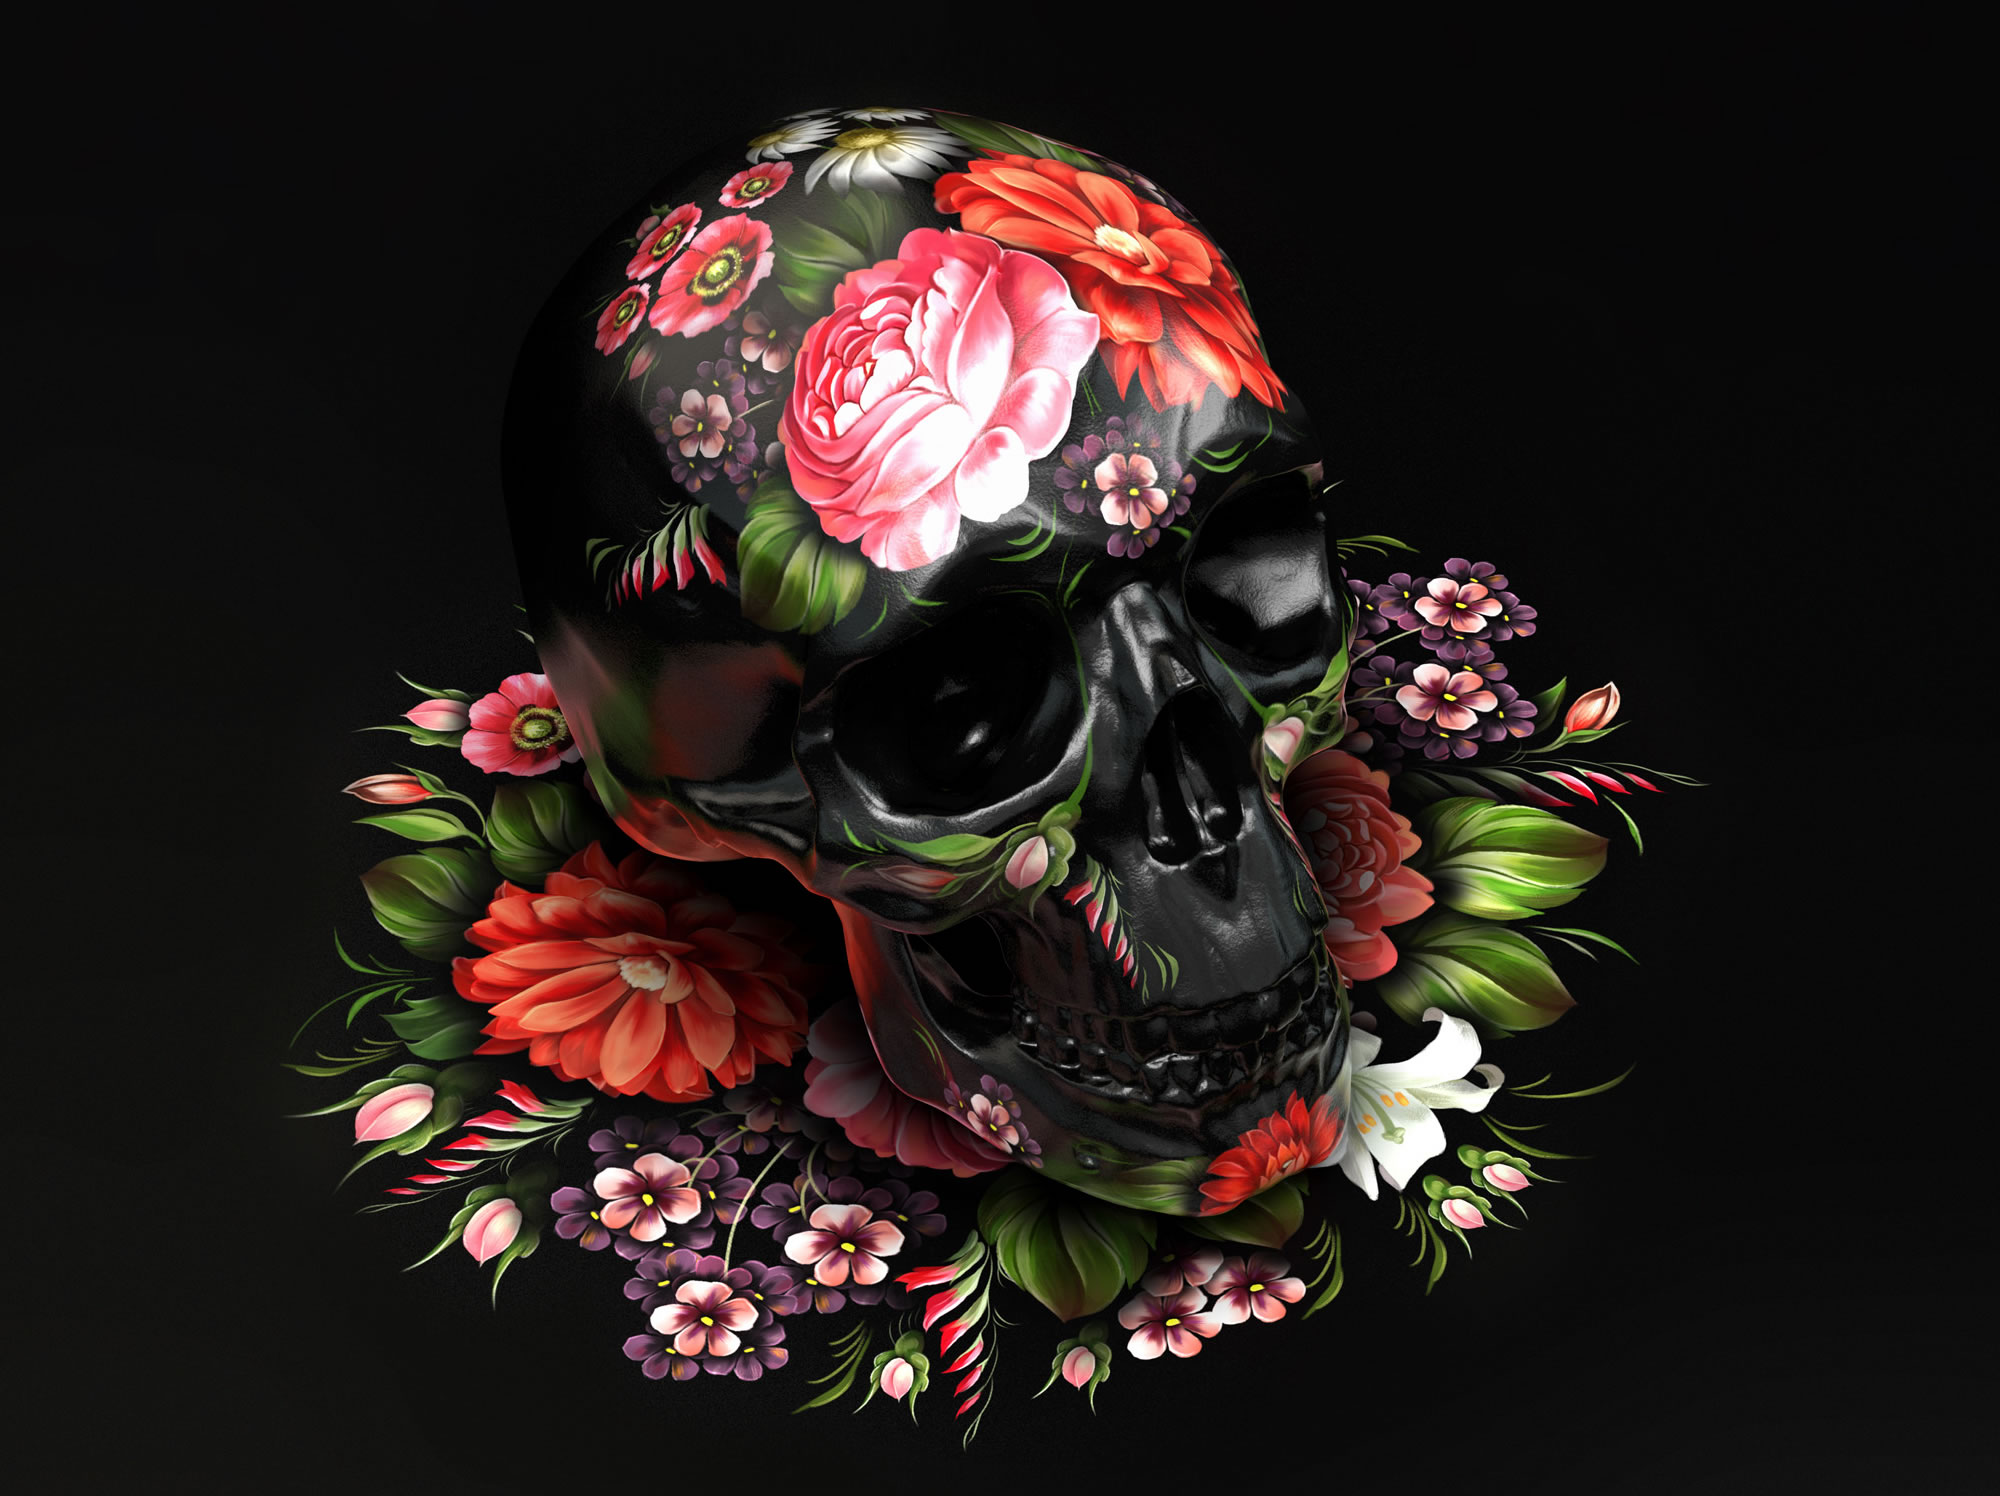 black skull with flowers, Folk Fusion Poster by Aleksandra Vinogradova